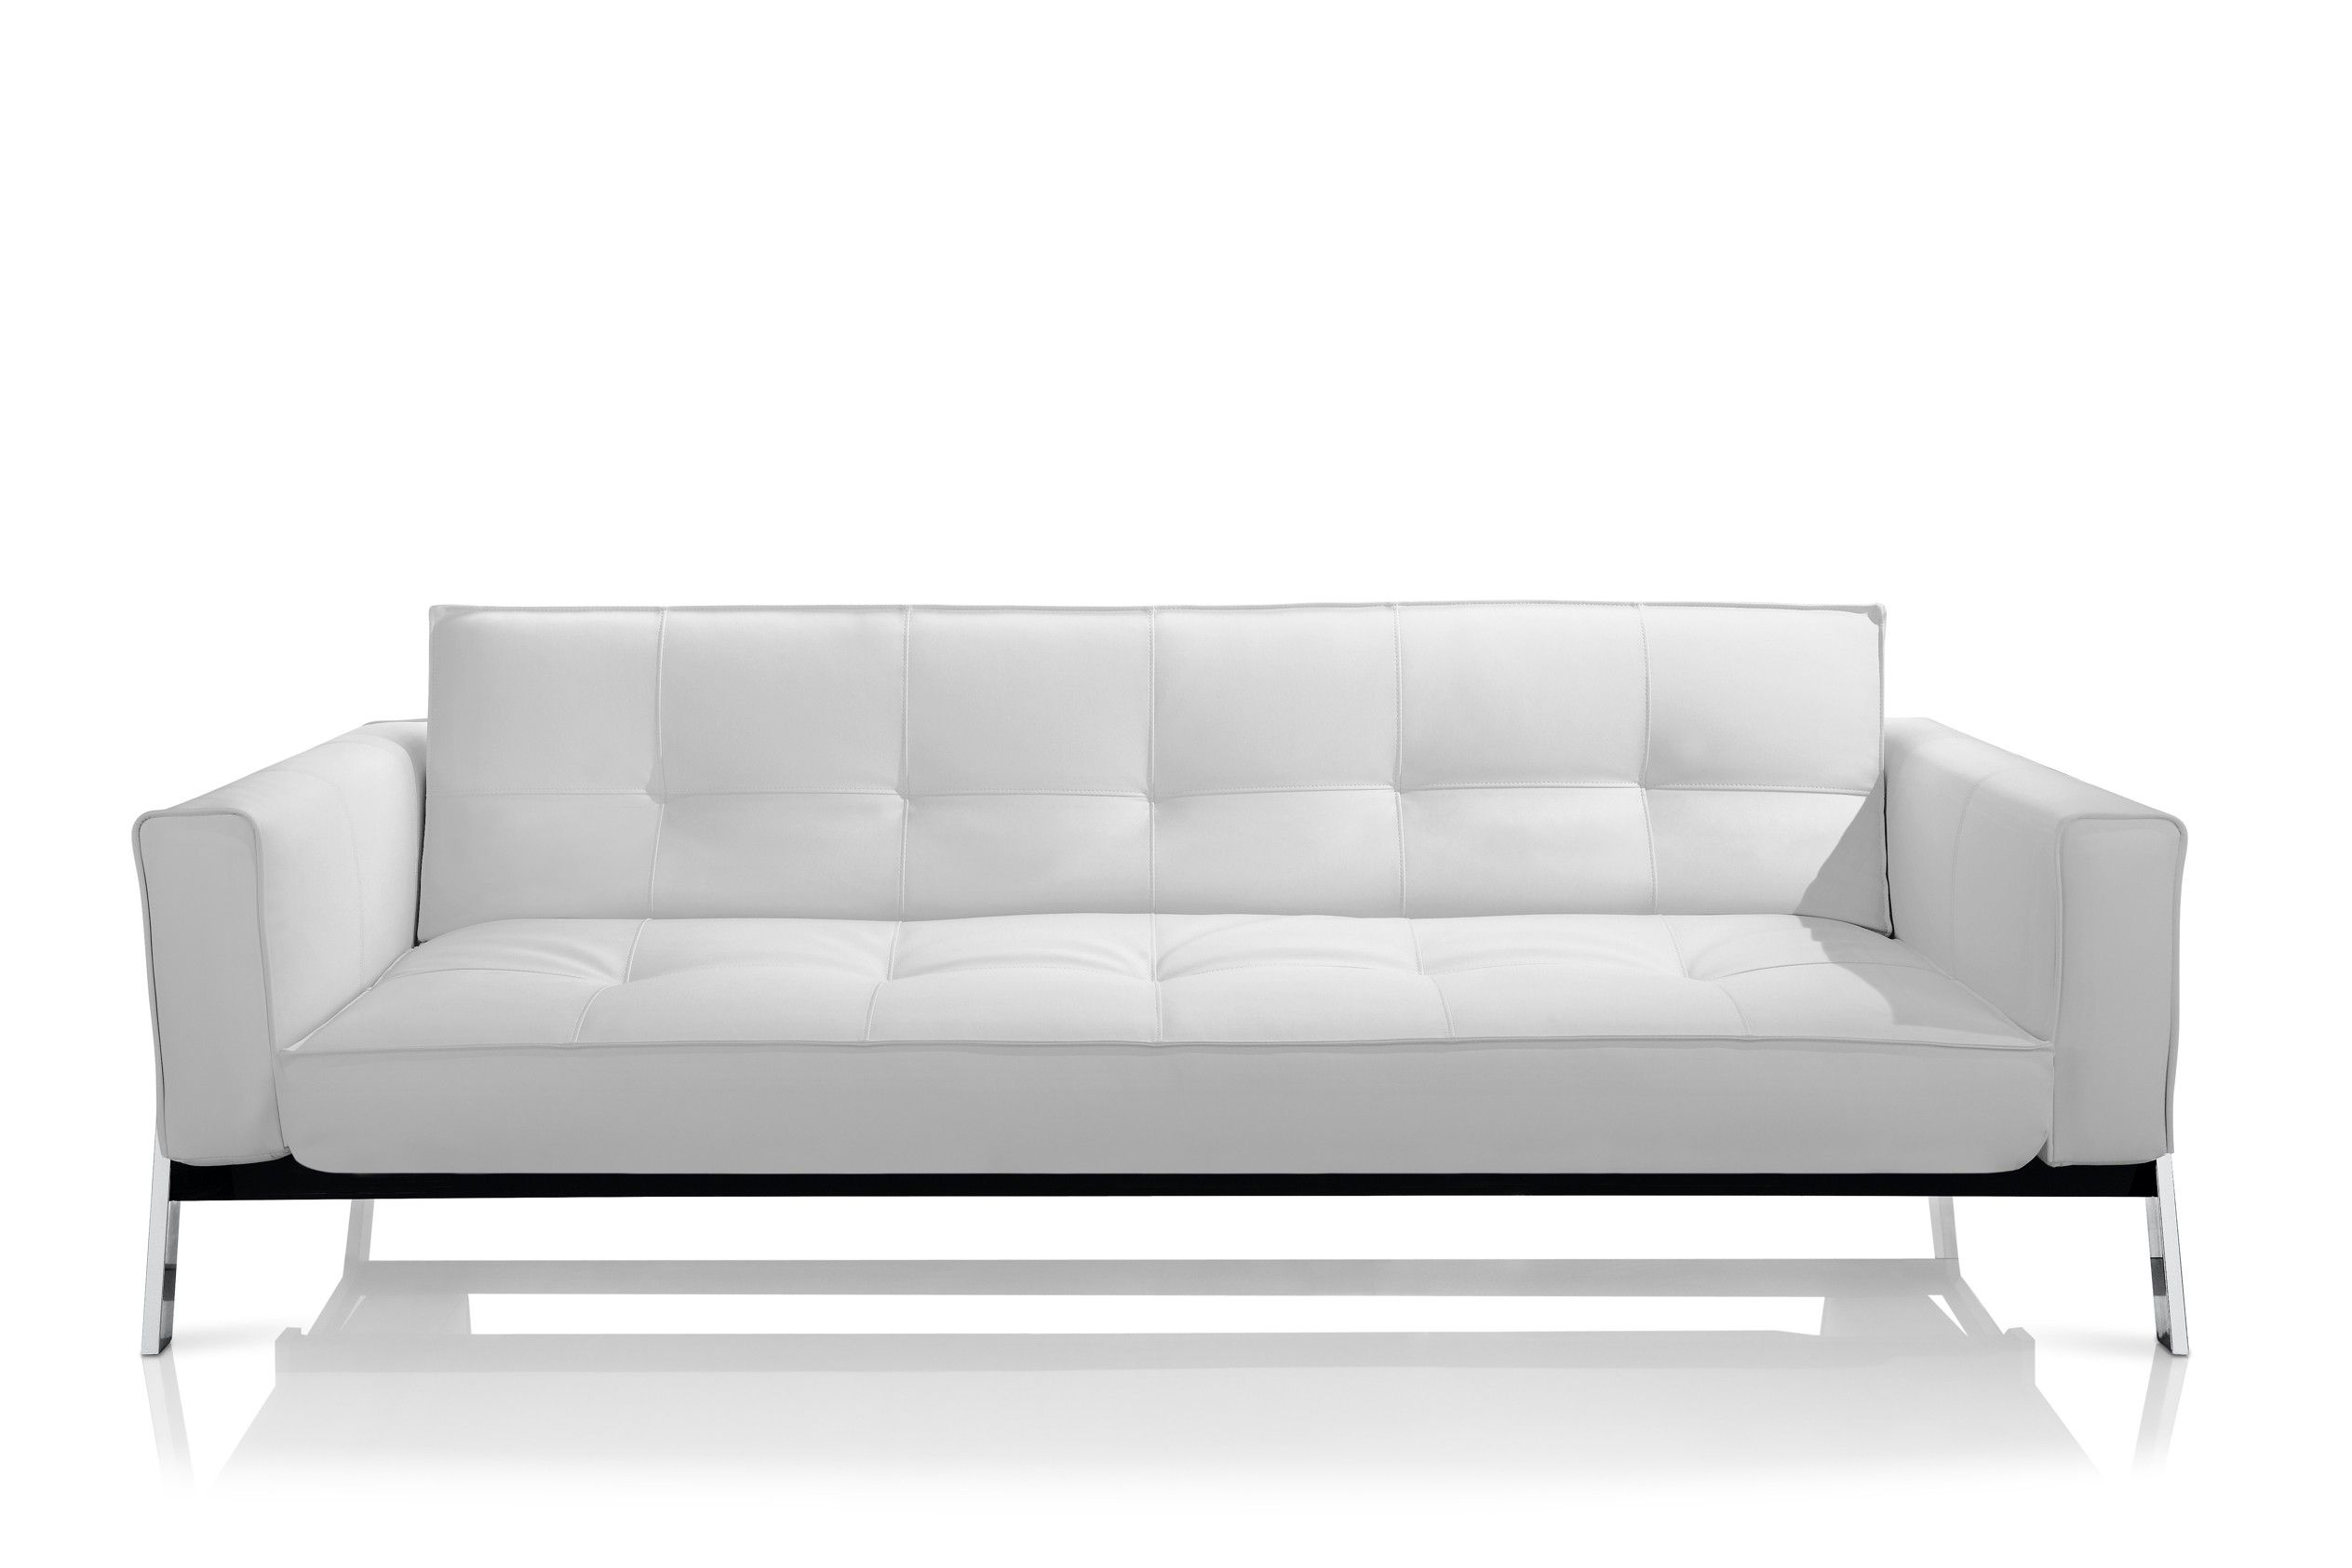 Awesome White Modern Couch Amazing White Modern Couch 95 For Your Office Sofa Ideas With White Modern C Modern Sofa Bed White Leather Sofas Modern White Sofa